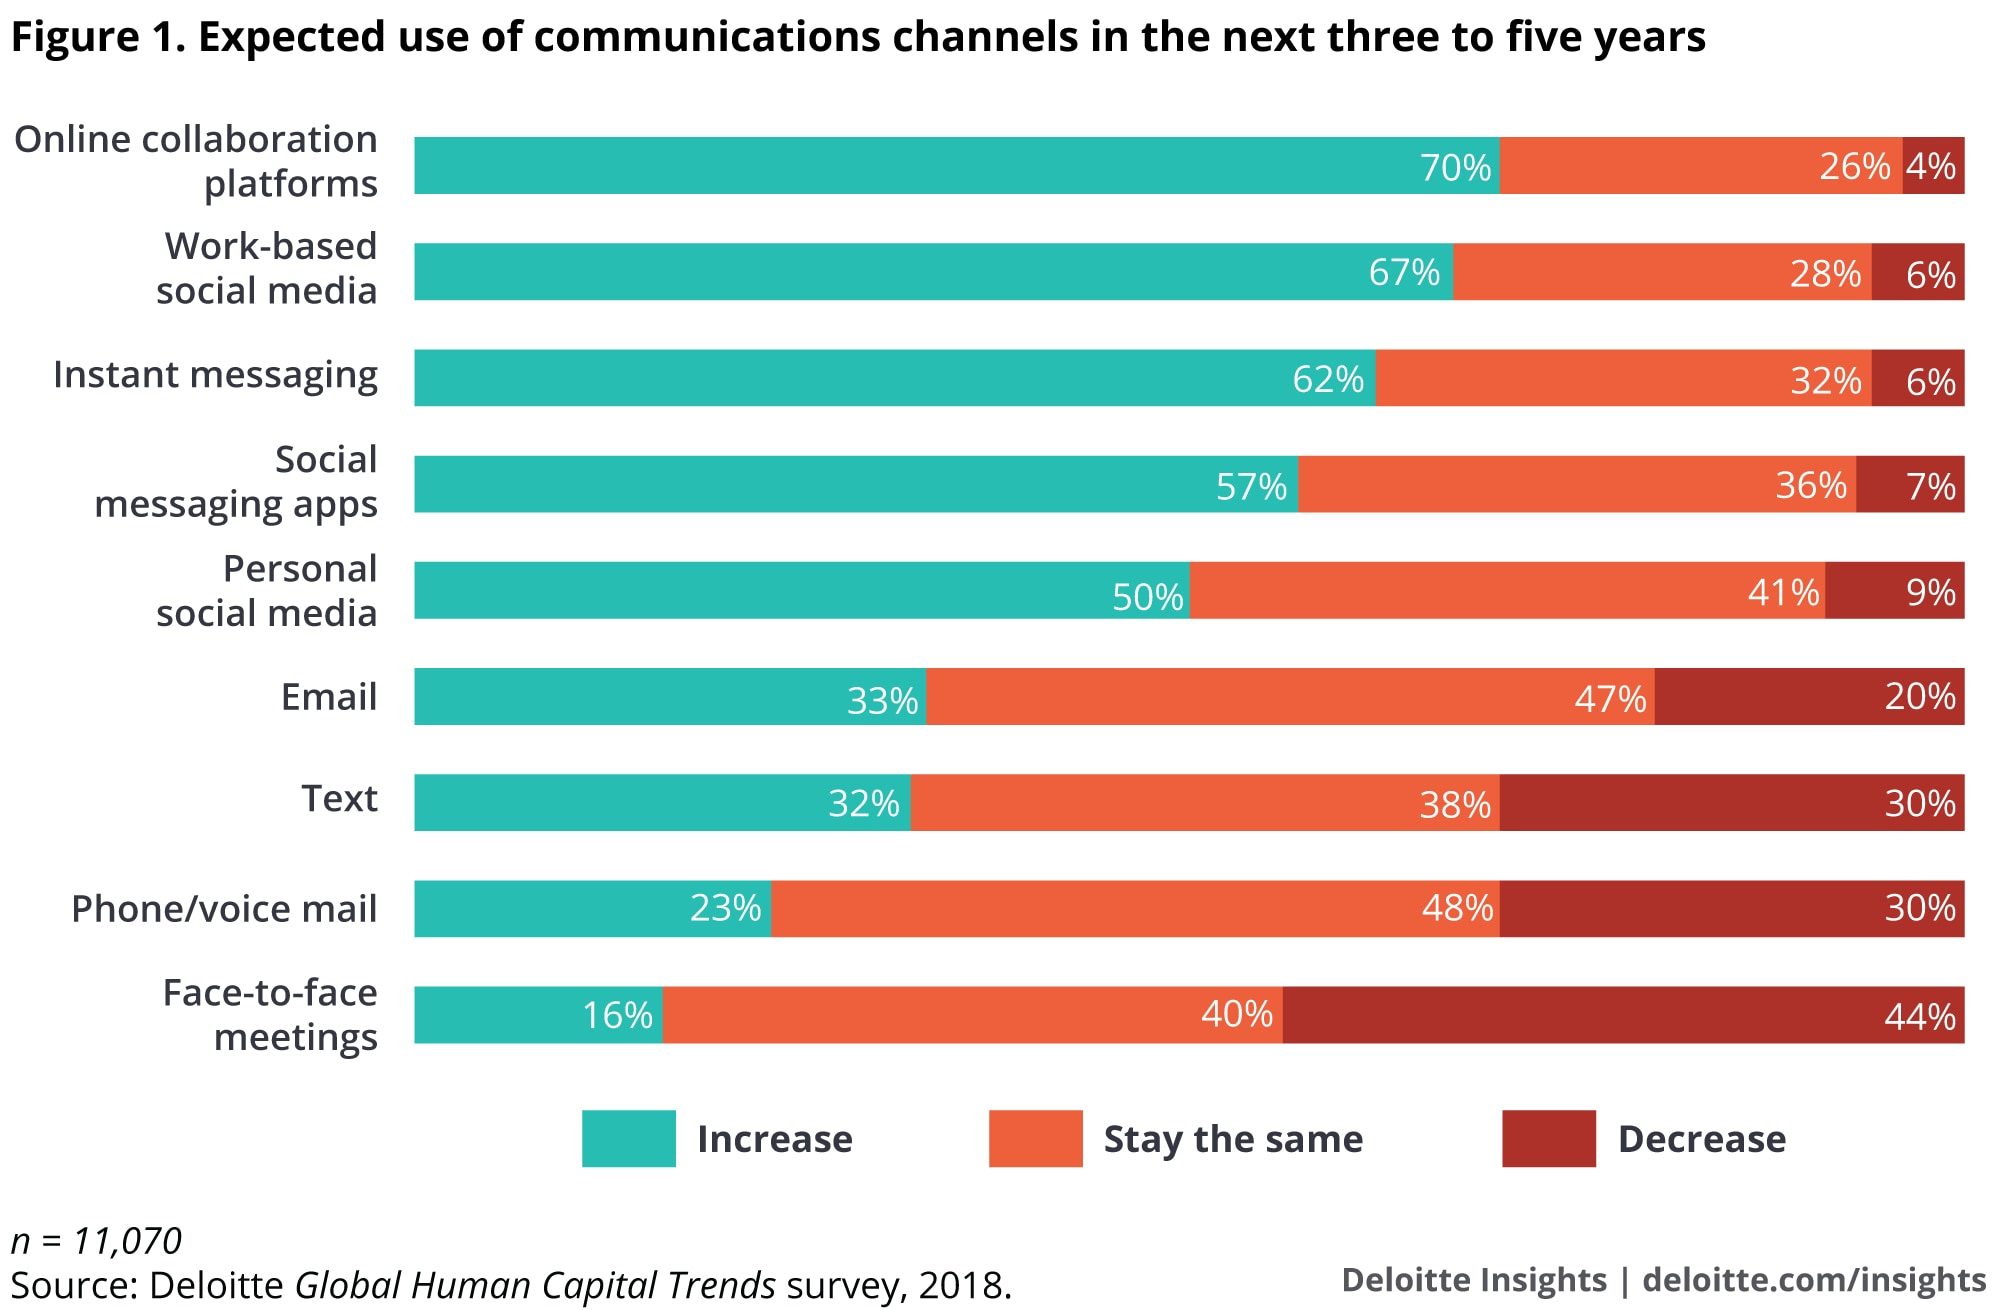 Expected use of communications channels in the next three to five years